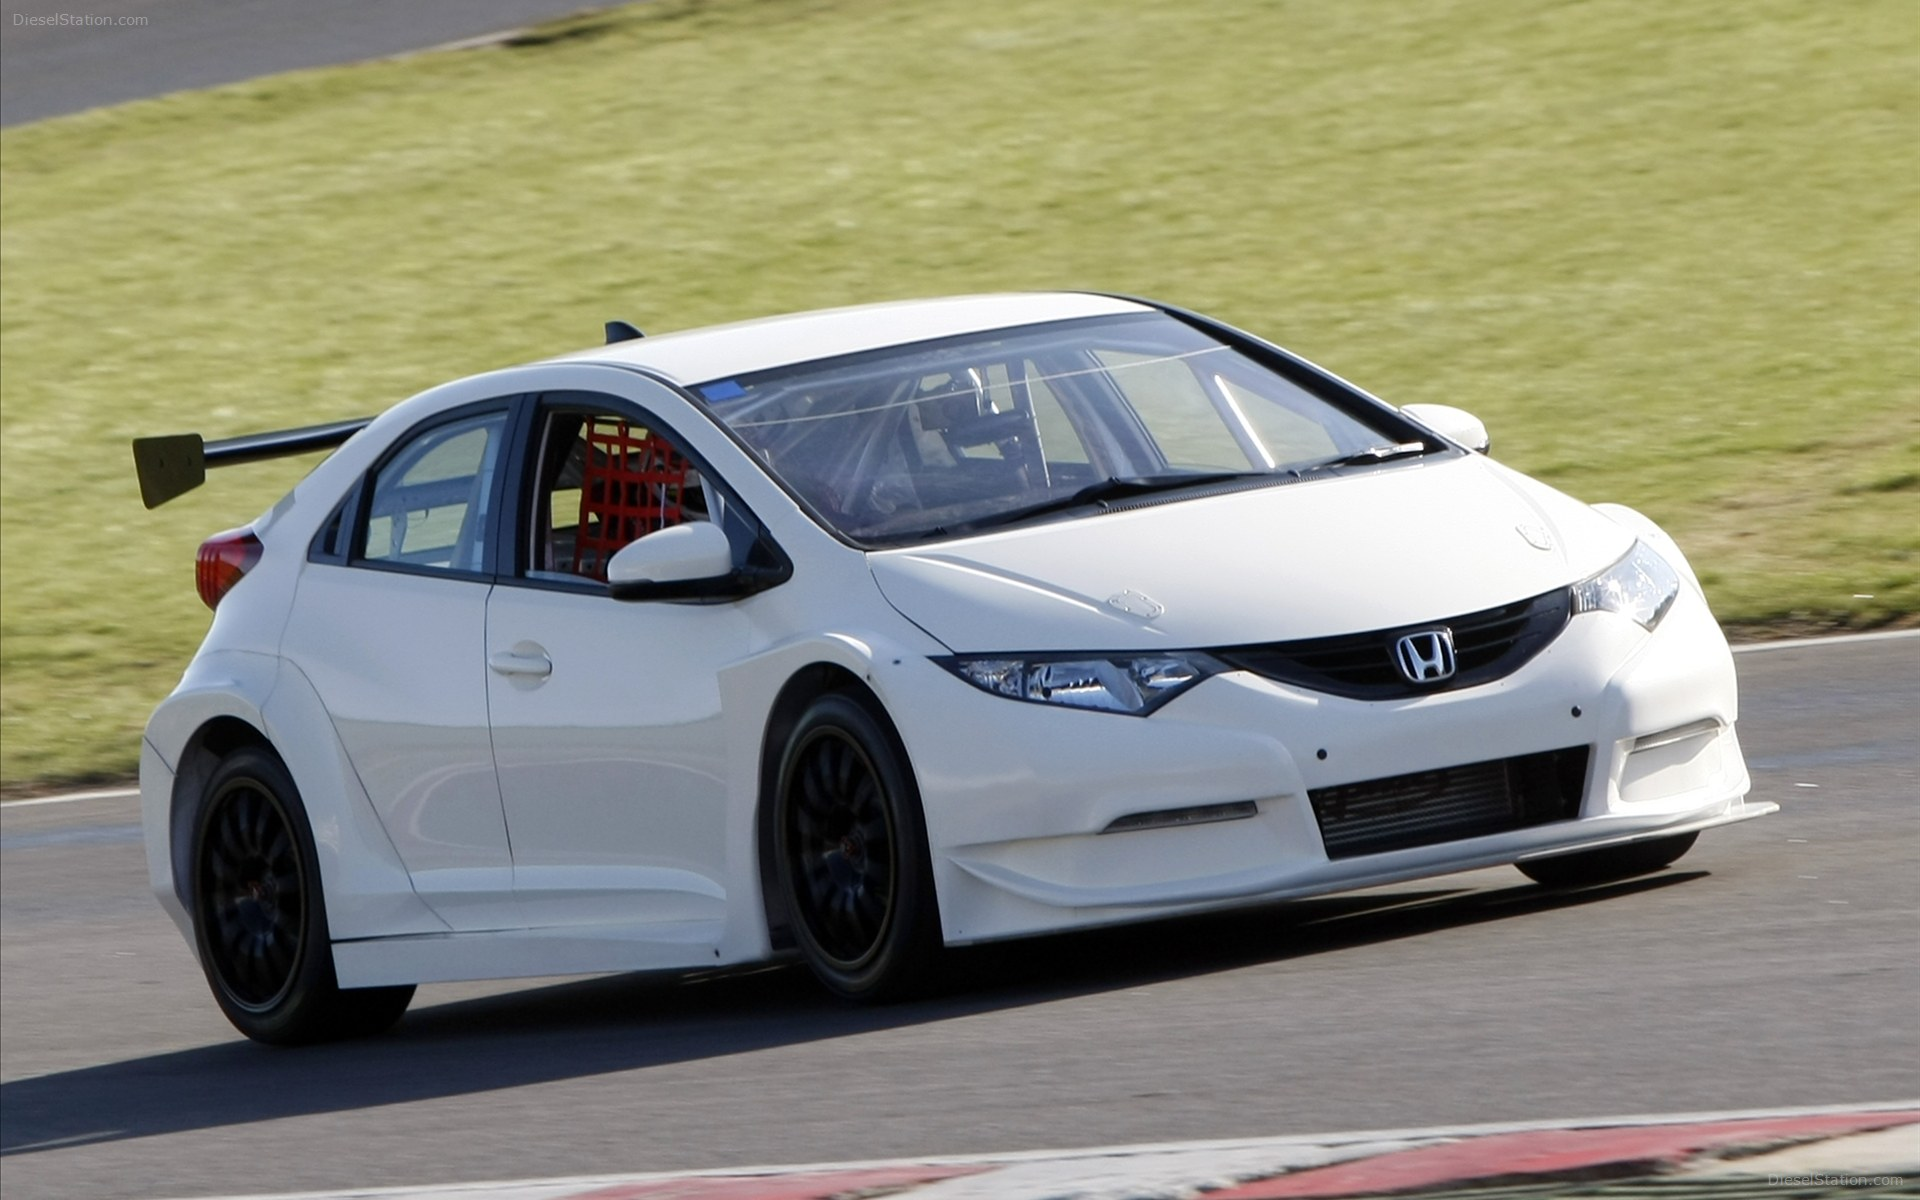 Honda Civic Touring Car 2012 Widescreen Wallpaper For Background